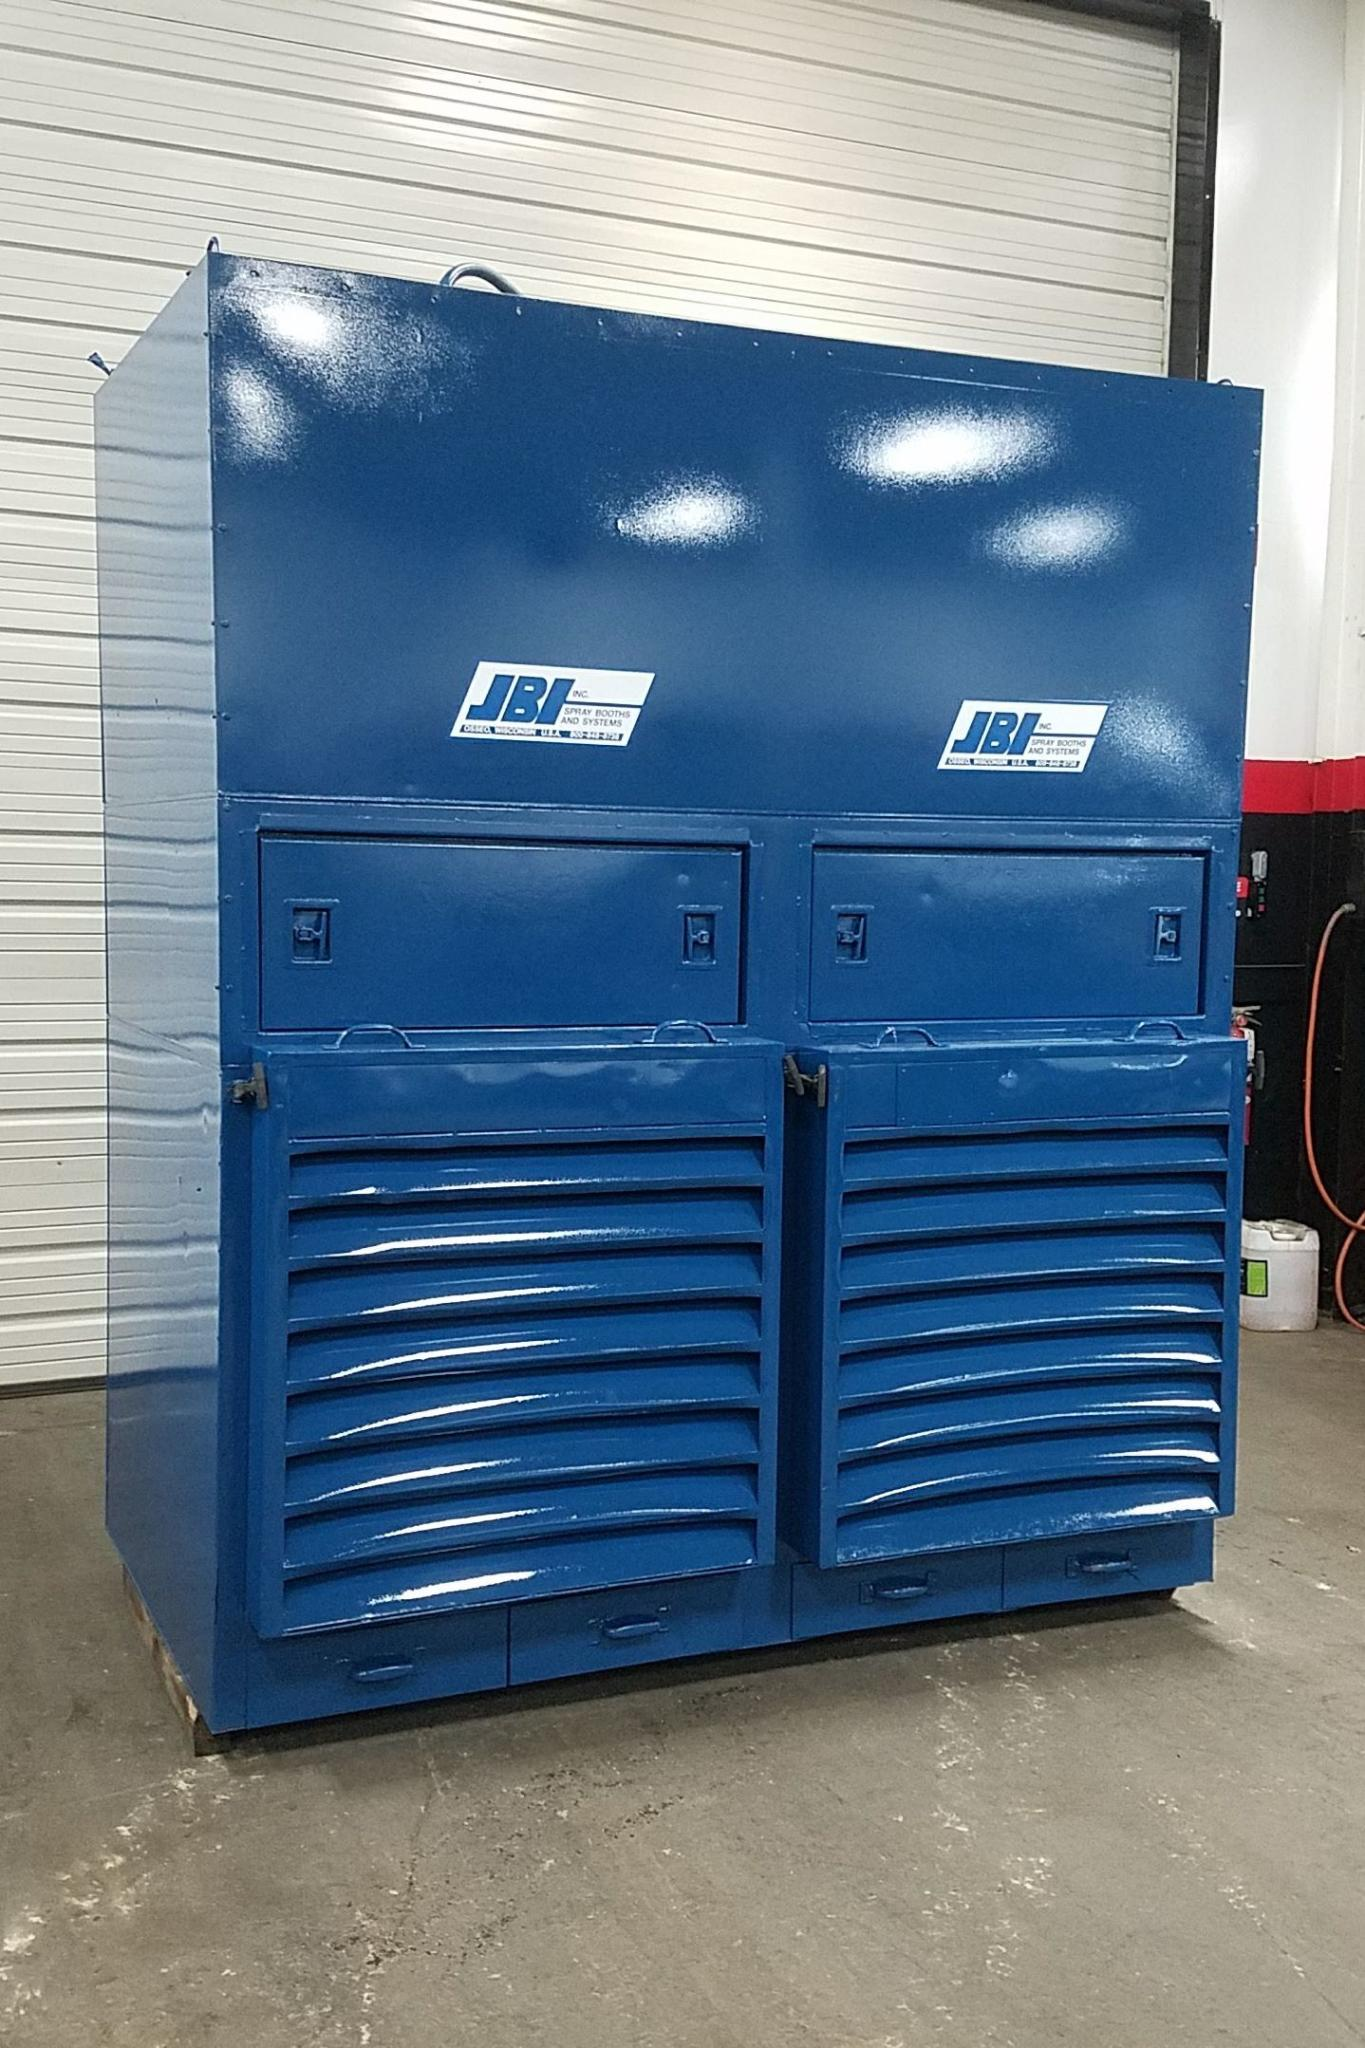 8,960 cfm JBI Double Module #7-SG Booth Dust Collector